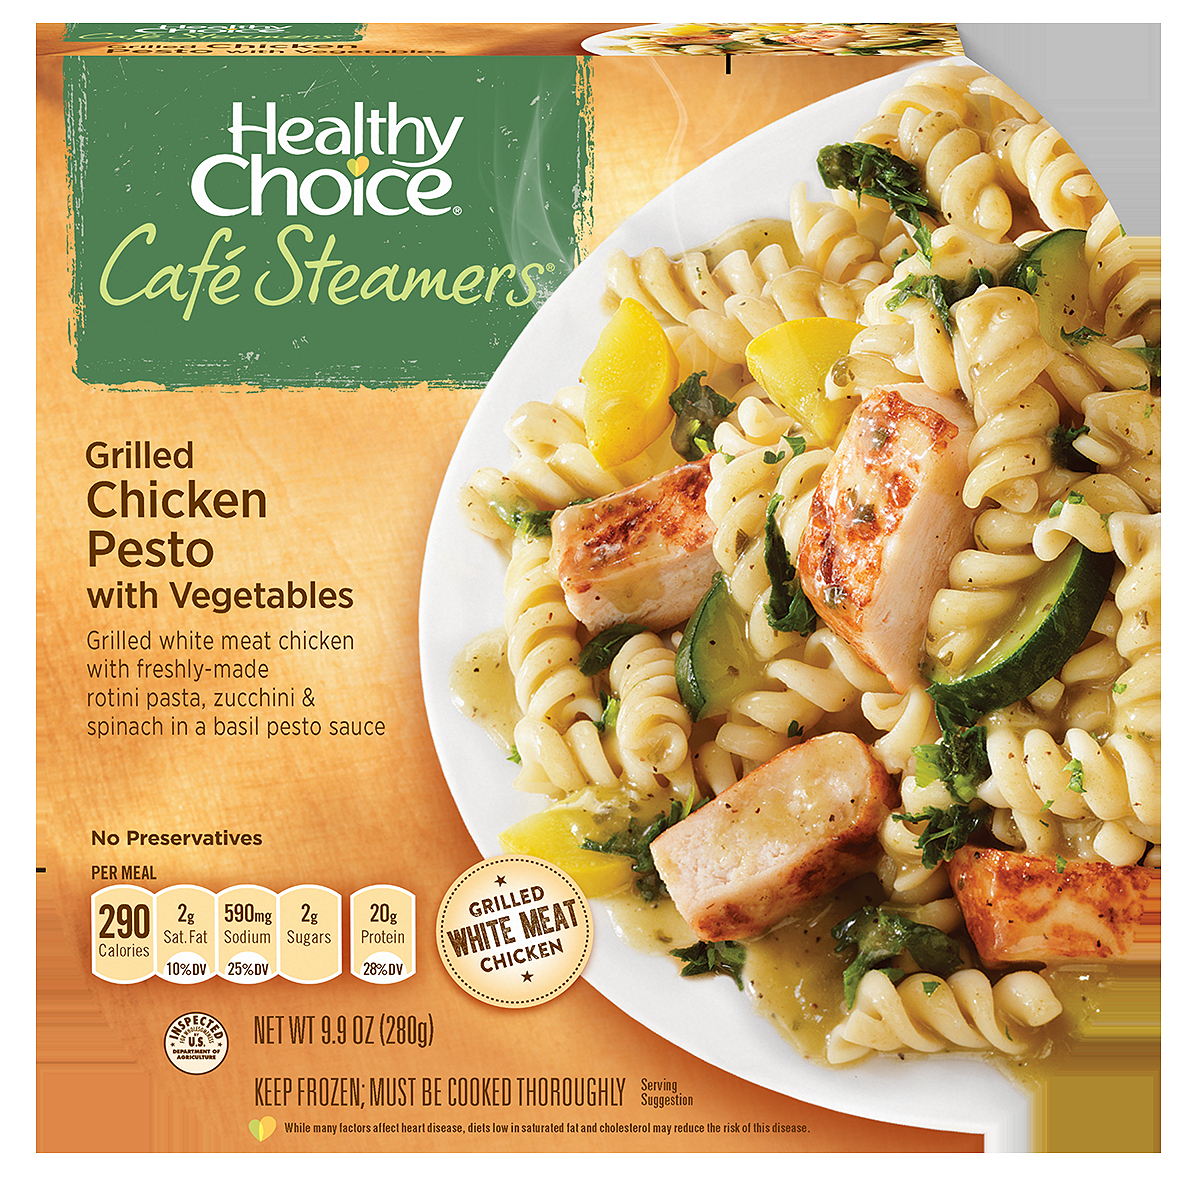 Healthy Choice Cafe Steamers Top Chef Grilled Chicken Pesto with Vegetables, 9.9 oz